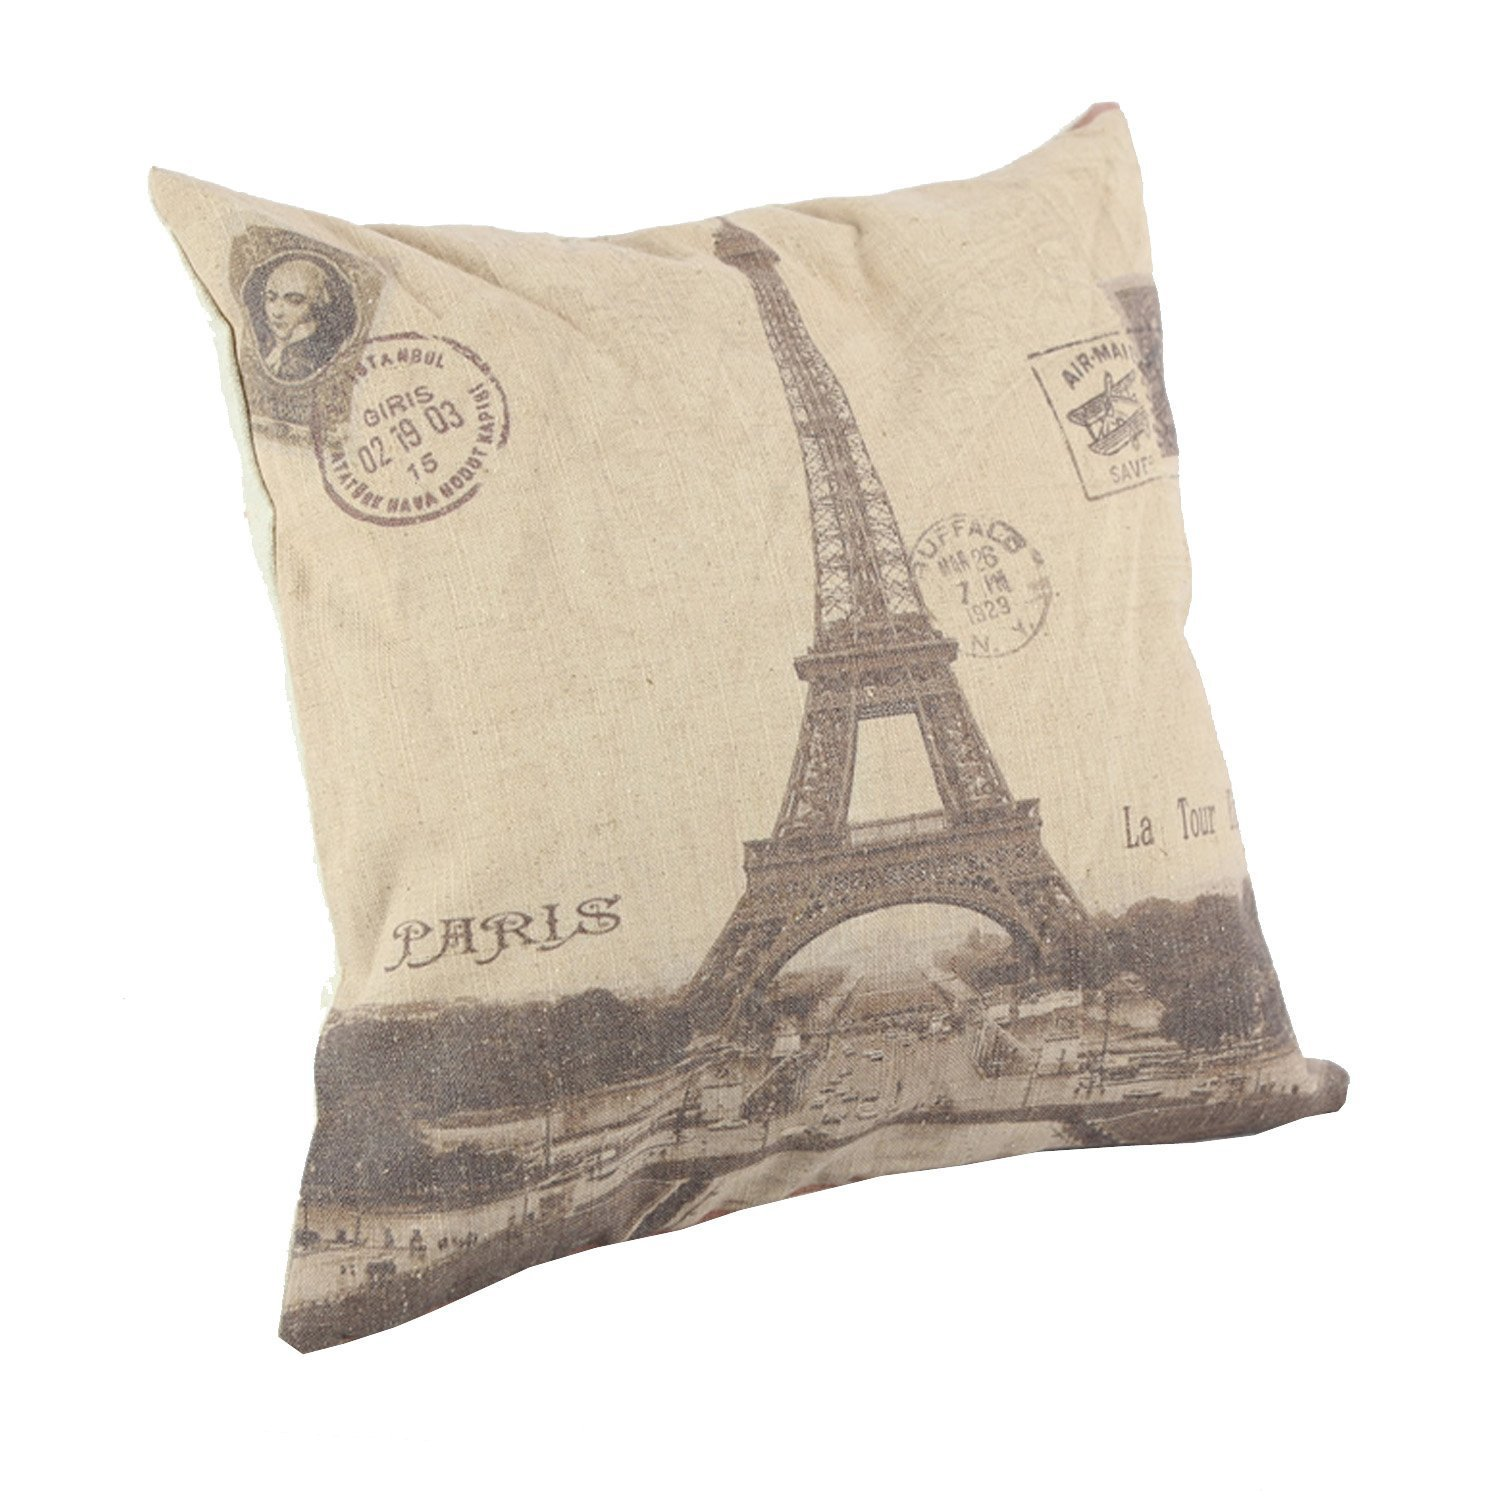 Createforlife Home Decorative Cotton Linen Square Pillowcase Throw Pillow Shams Cushion Cover Paris City Eiffel Tower 18""